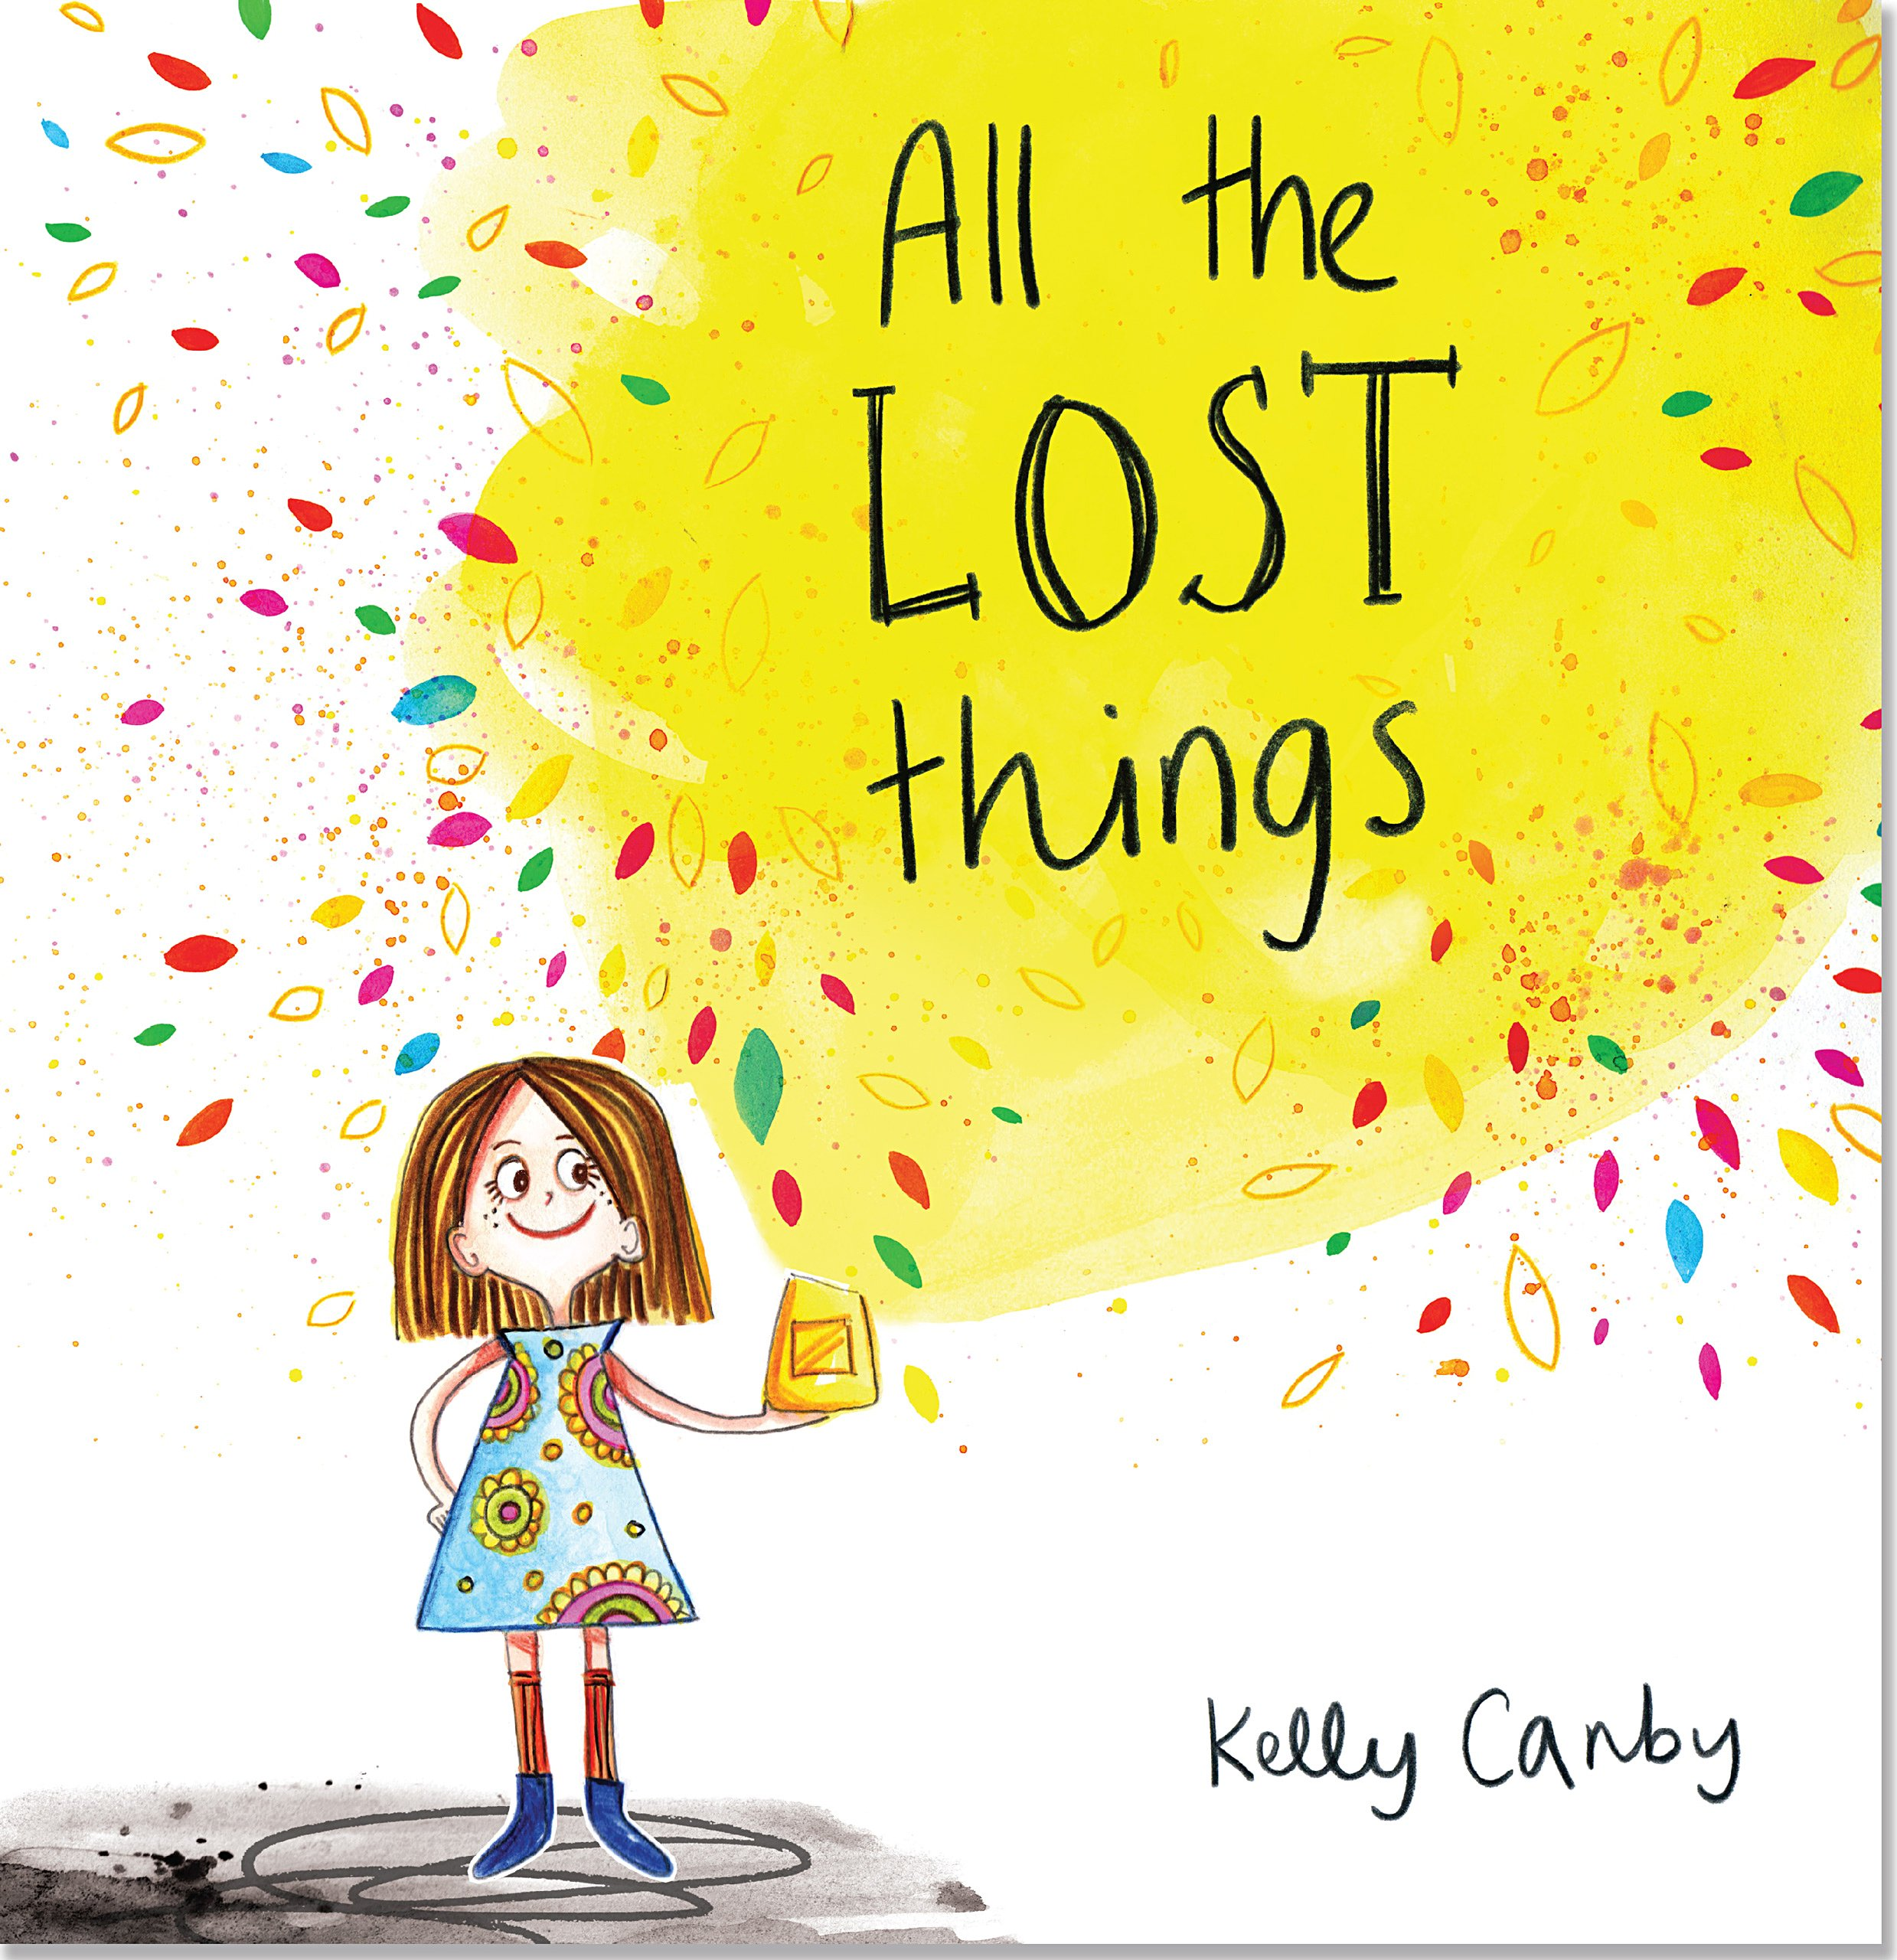 All the lost things kelly canby 9781441318046 amazon books fandeluxe Gallery